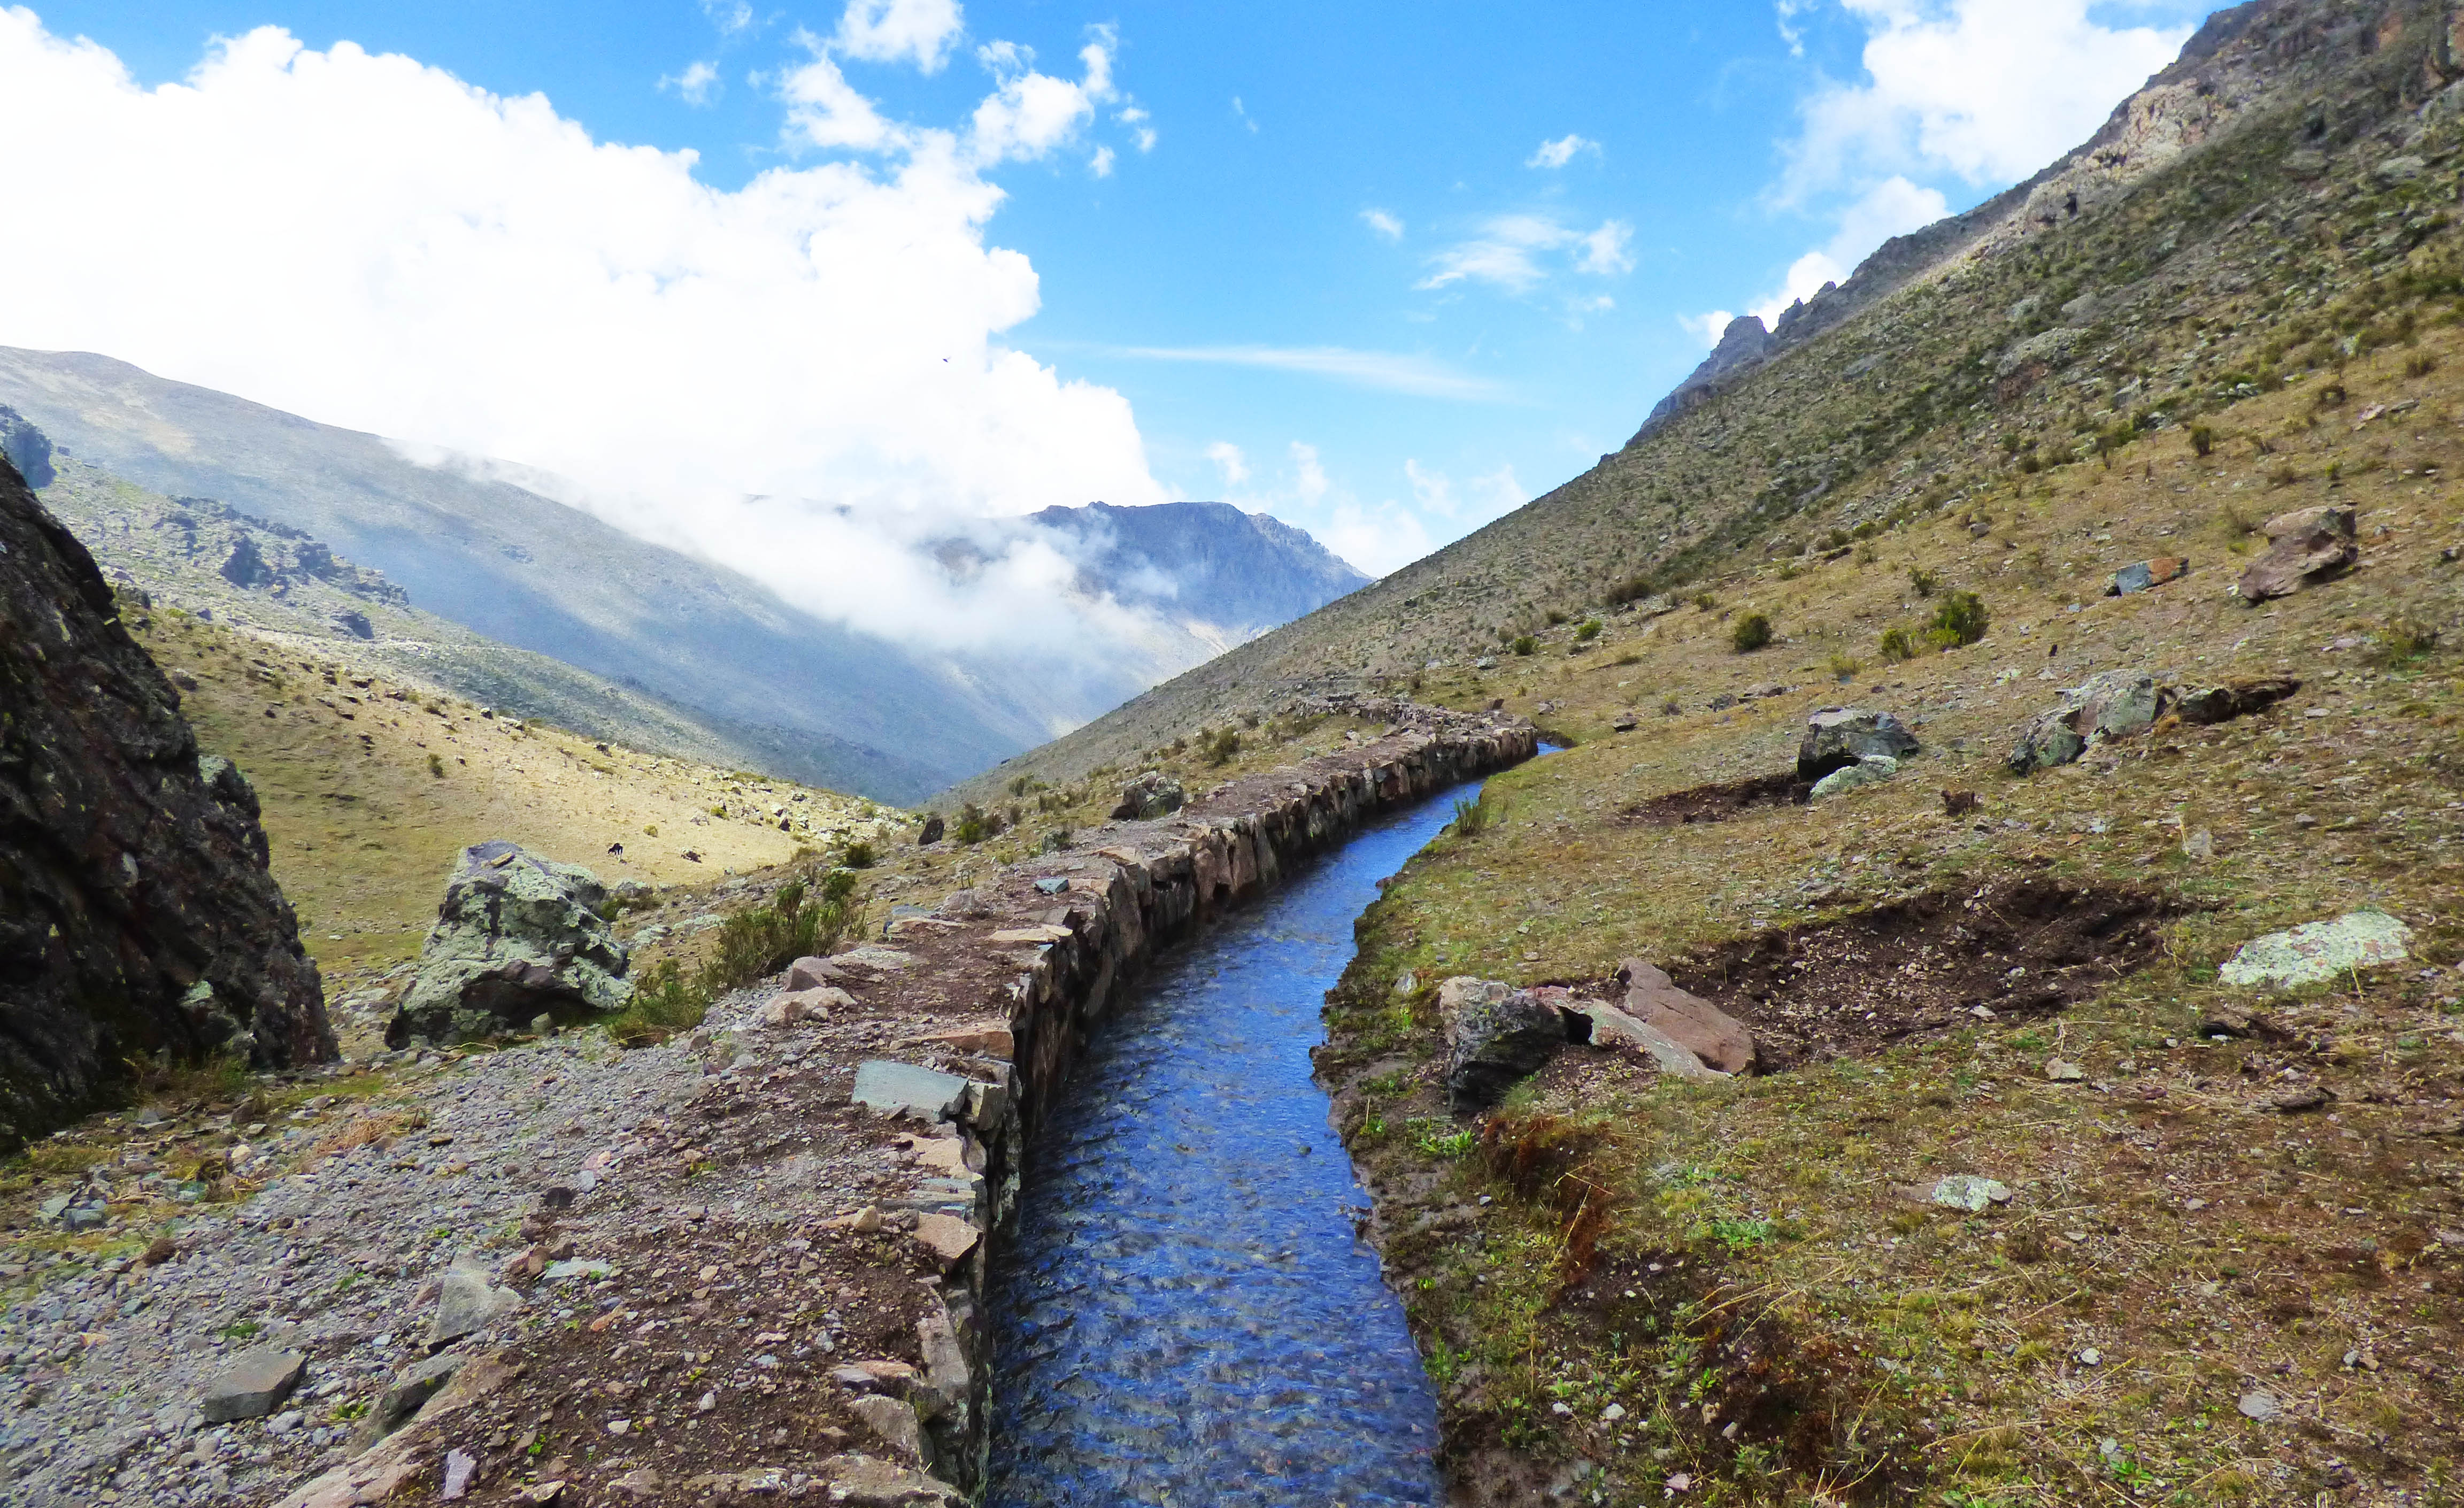 A water canal runs along a mountainside, from the background directly to the camera.